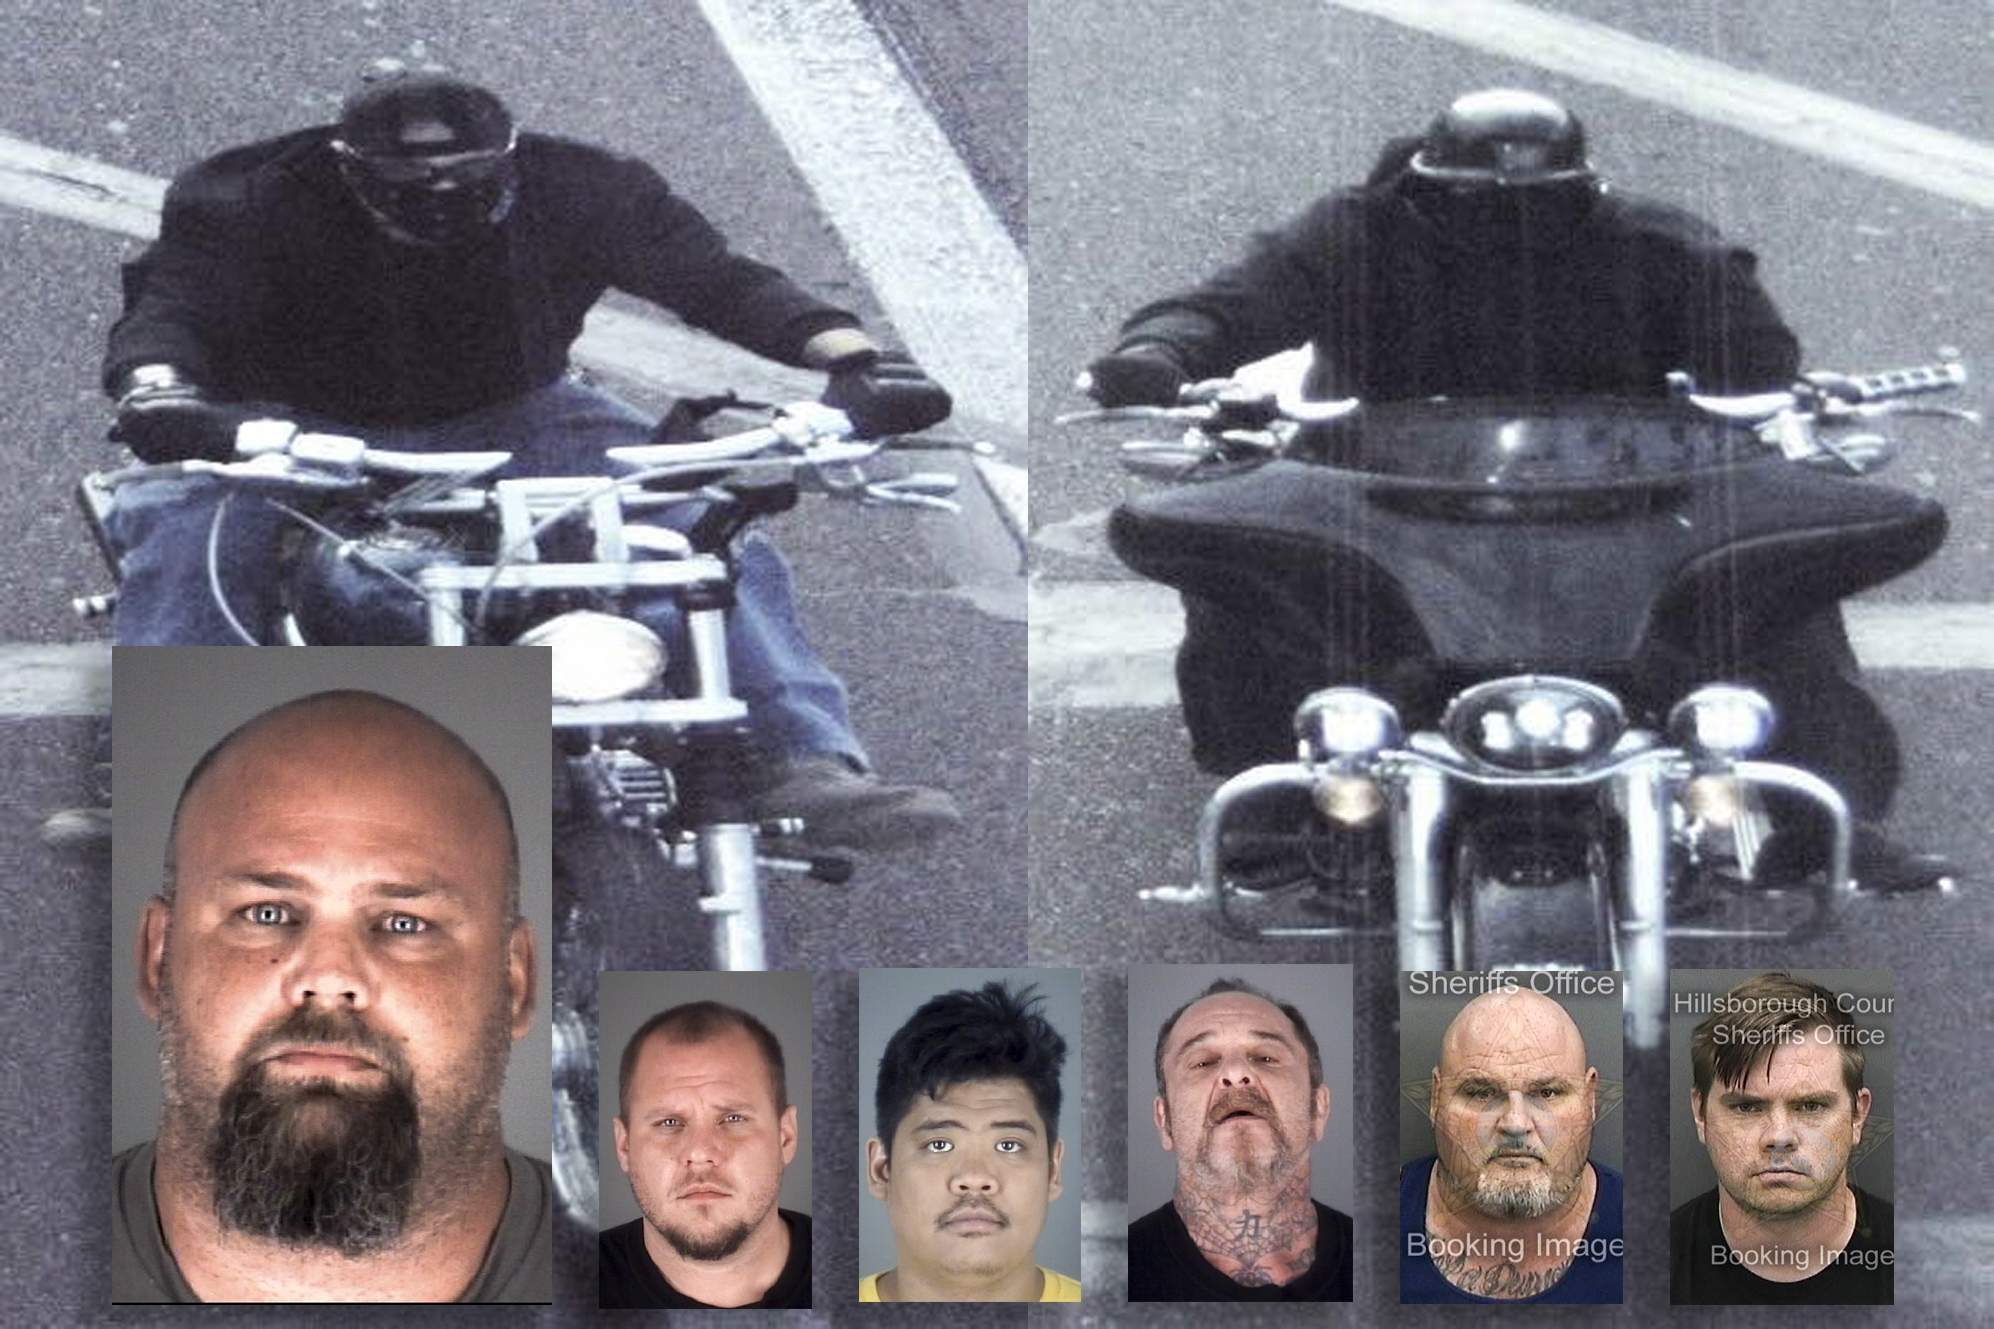 Violent feud led up to slaying of Pasco Outlaws leader  It